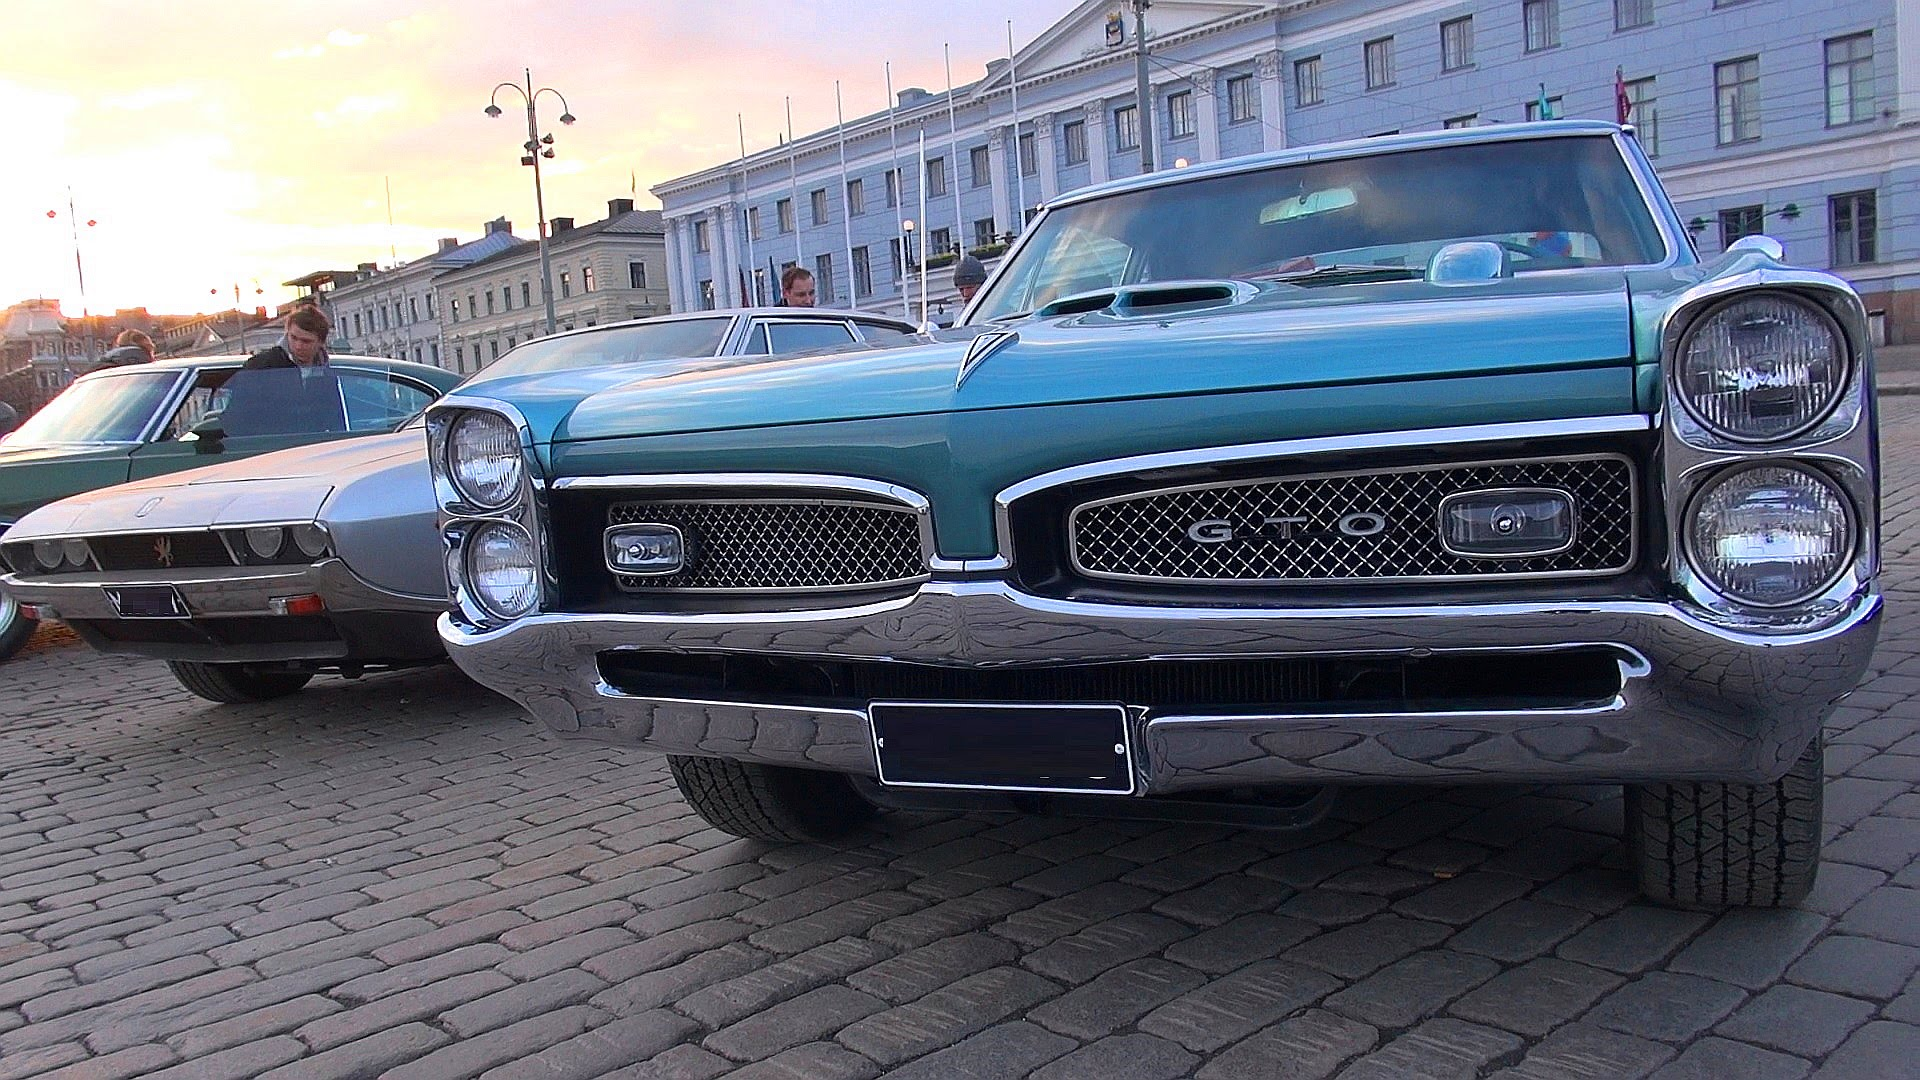 Winter is Over in Helsinki, Muscle Cars are Back!